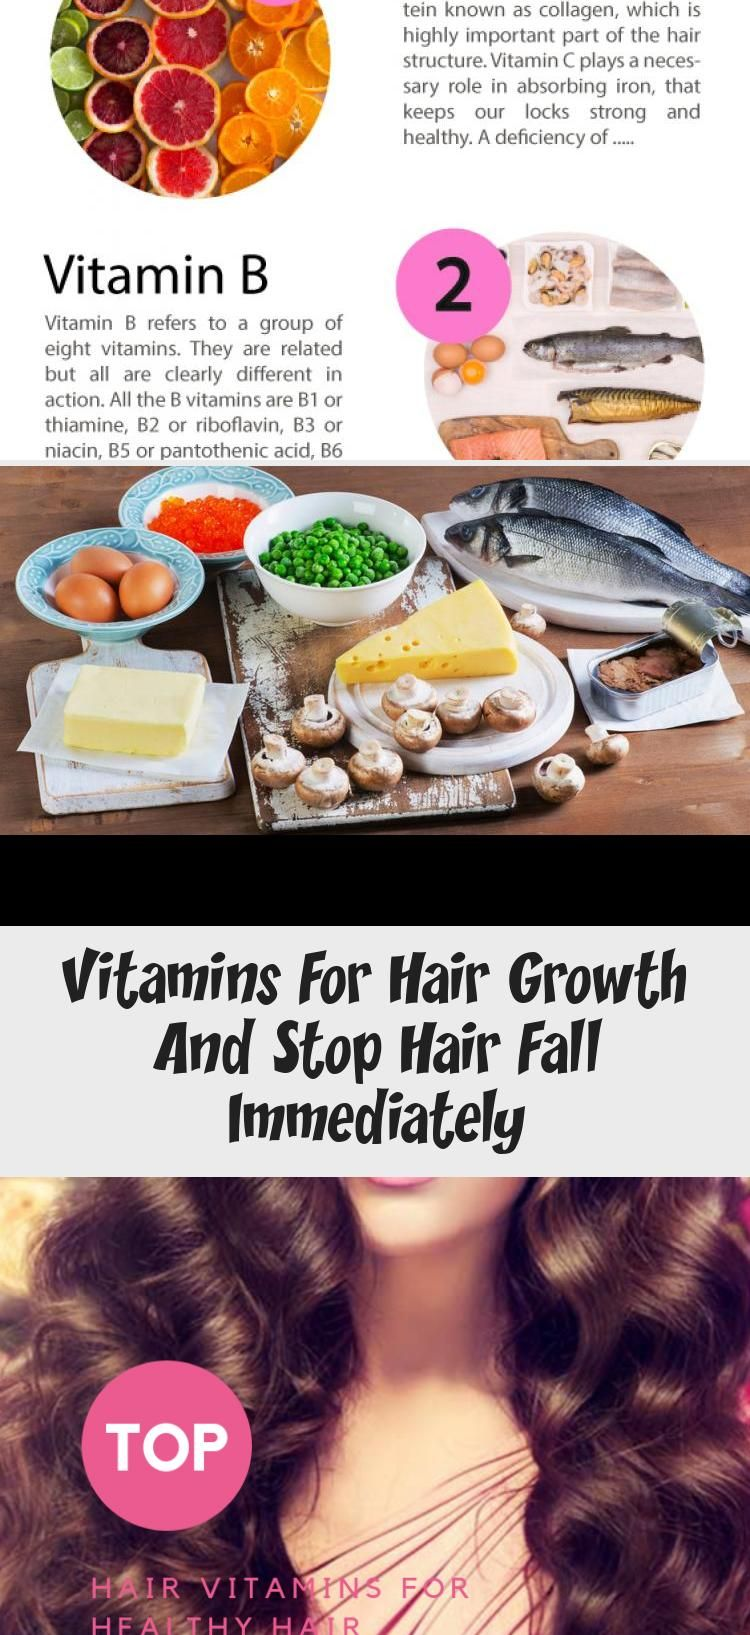 keyword[1]} and Vitamins-for-hair-growth-and-stop-hair-fall-immediately-Shopno-Dana Vitamins for hair growth-Shopnodana.com #hair #hairfall #regrowthhair #hairstyles #hairtreatment #beauty #beautytips #women #womensfashion #healthy #healthyfood #naturalhairlossremedy #hairgrowthDoterra #hairgrowthOvernight #hairgrowthChallenge #hairgrowthSupplement #hairgrowthThicker